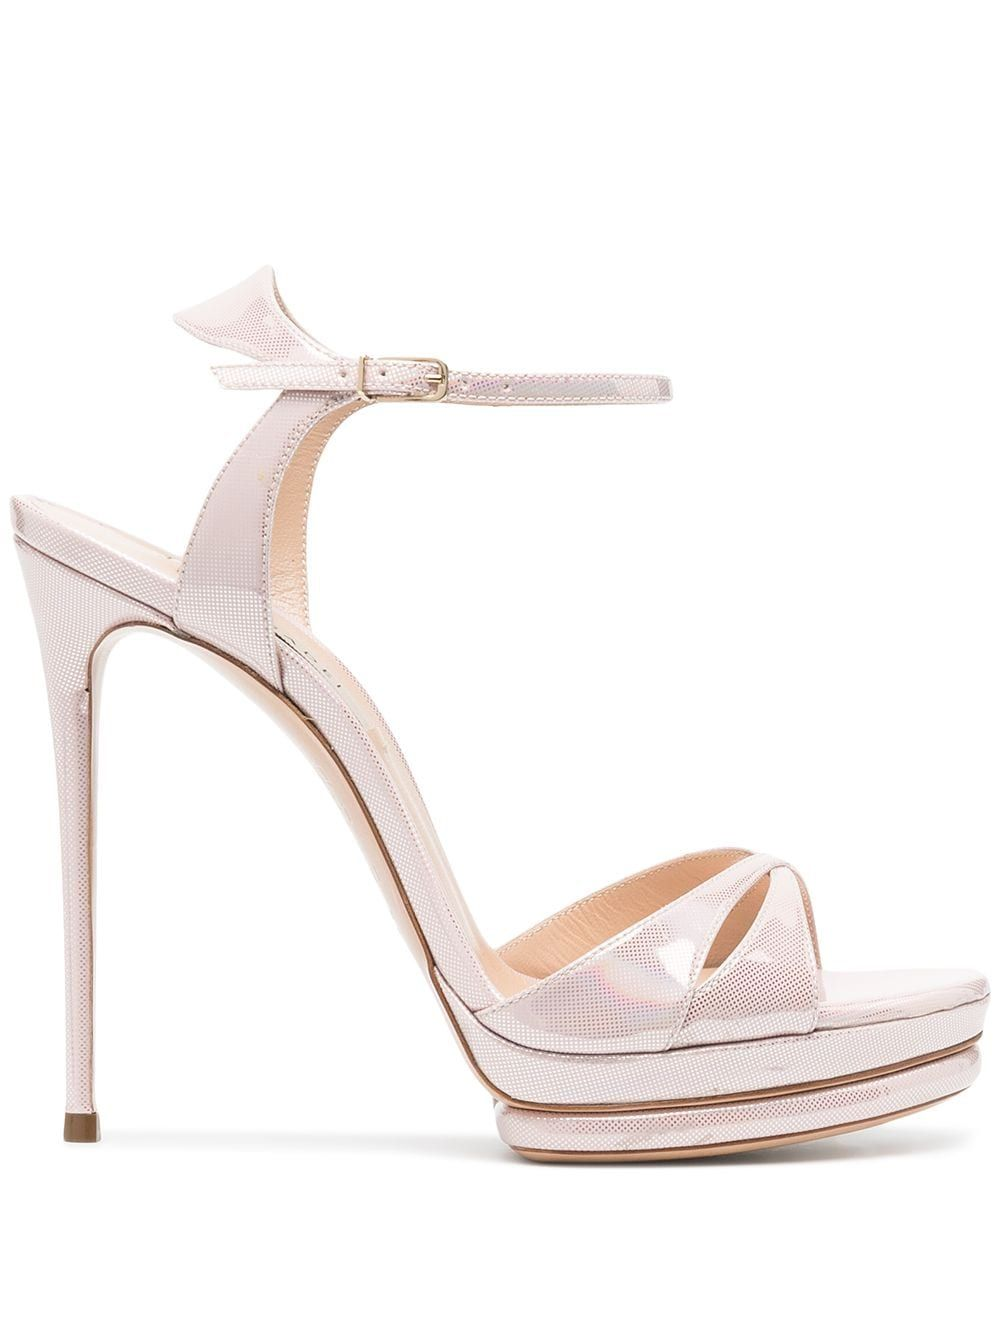 Casadei CASADEI WOMEN'S PINK LEATHER SANDALS